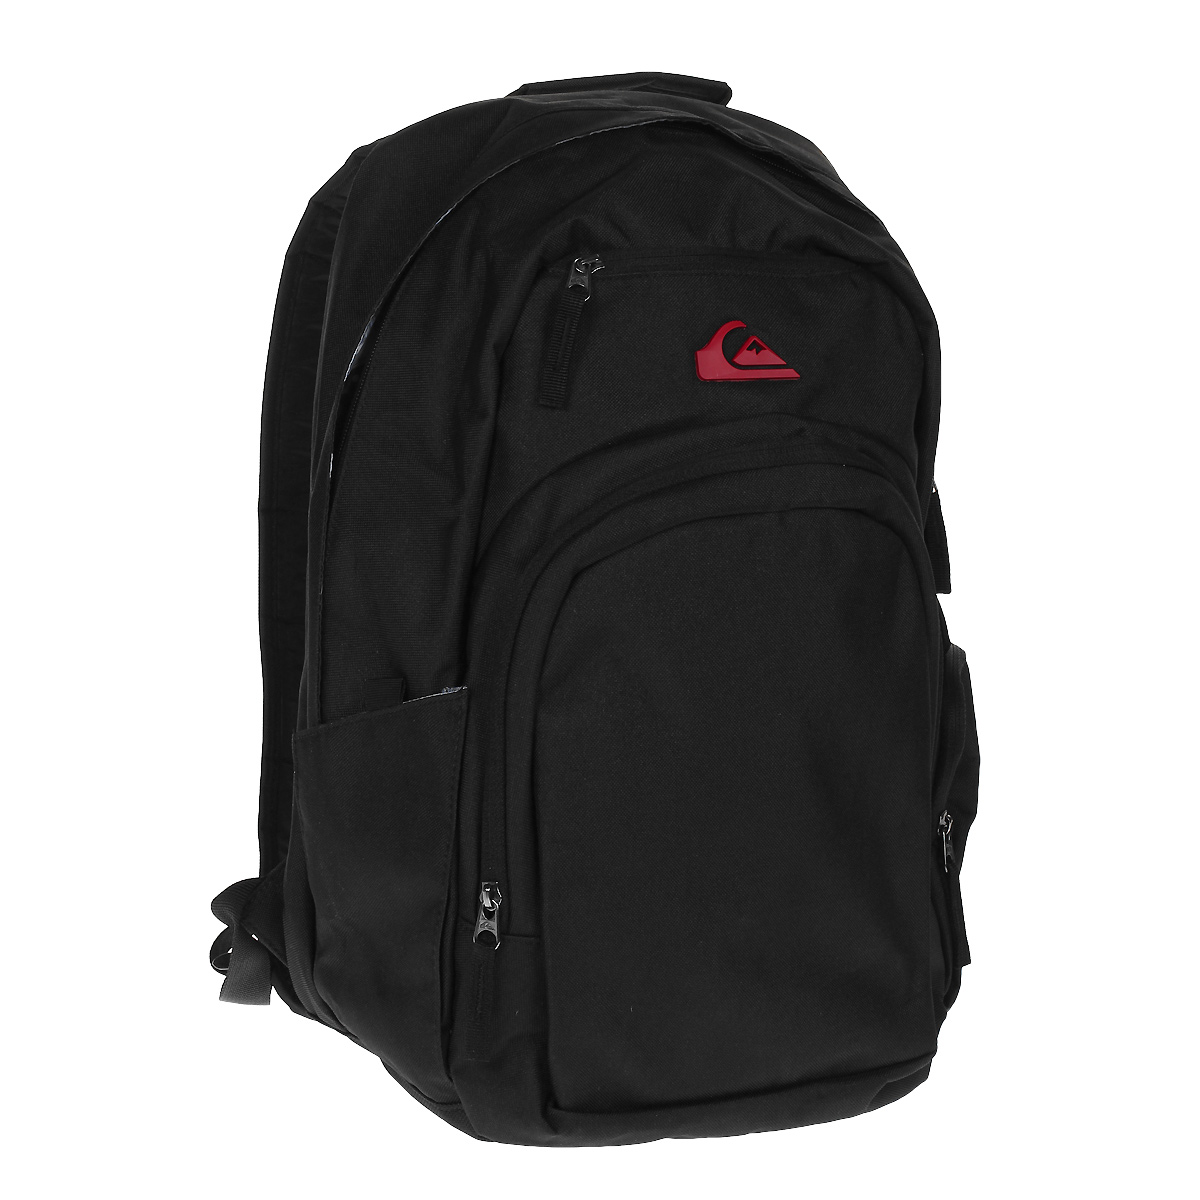 "Рюкзак Quiksilver ""Mudo Backpack X3"", цвет: черный. KTMBA1461-KVK0"